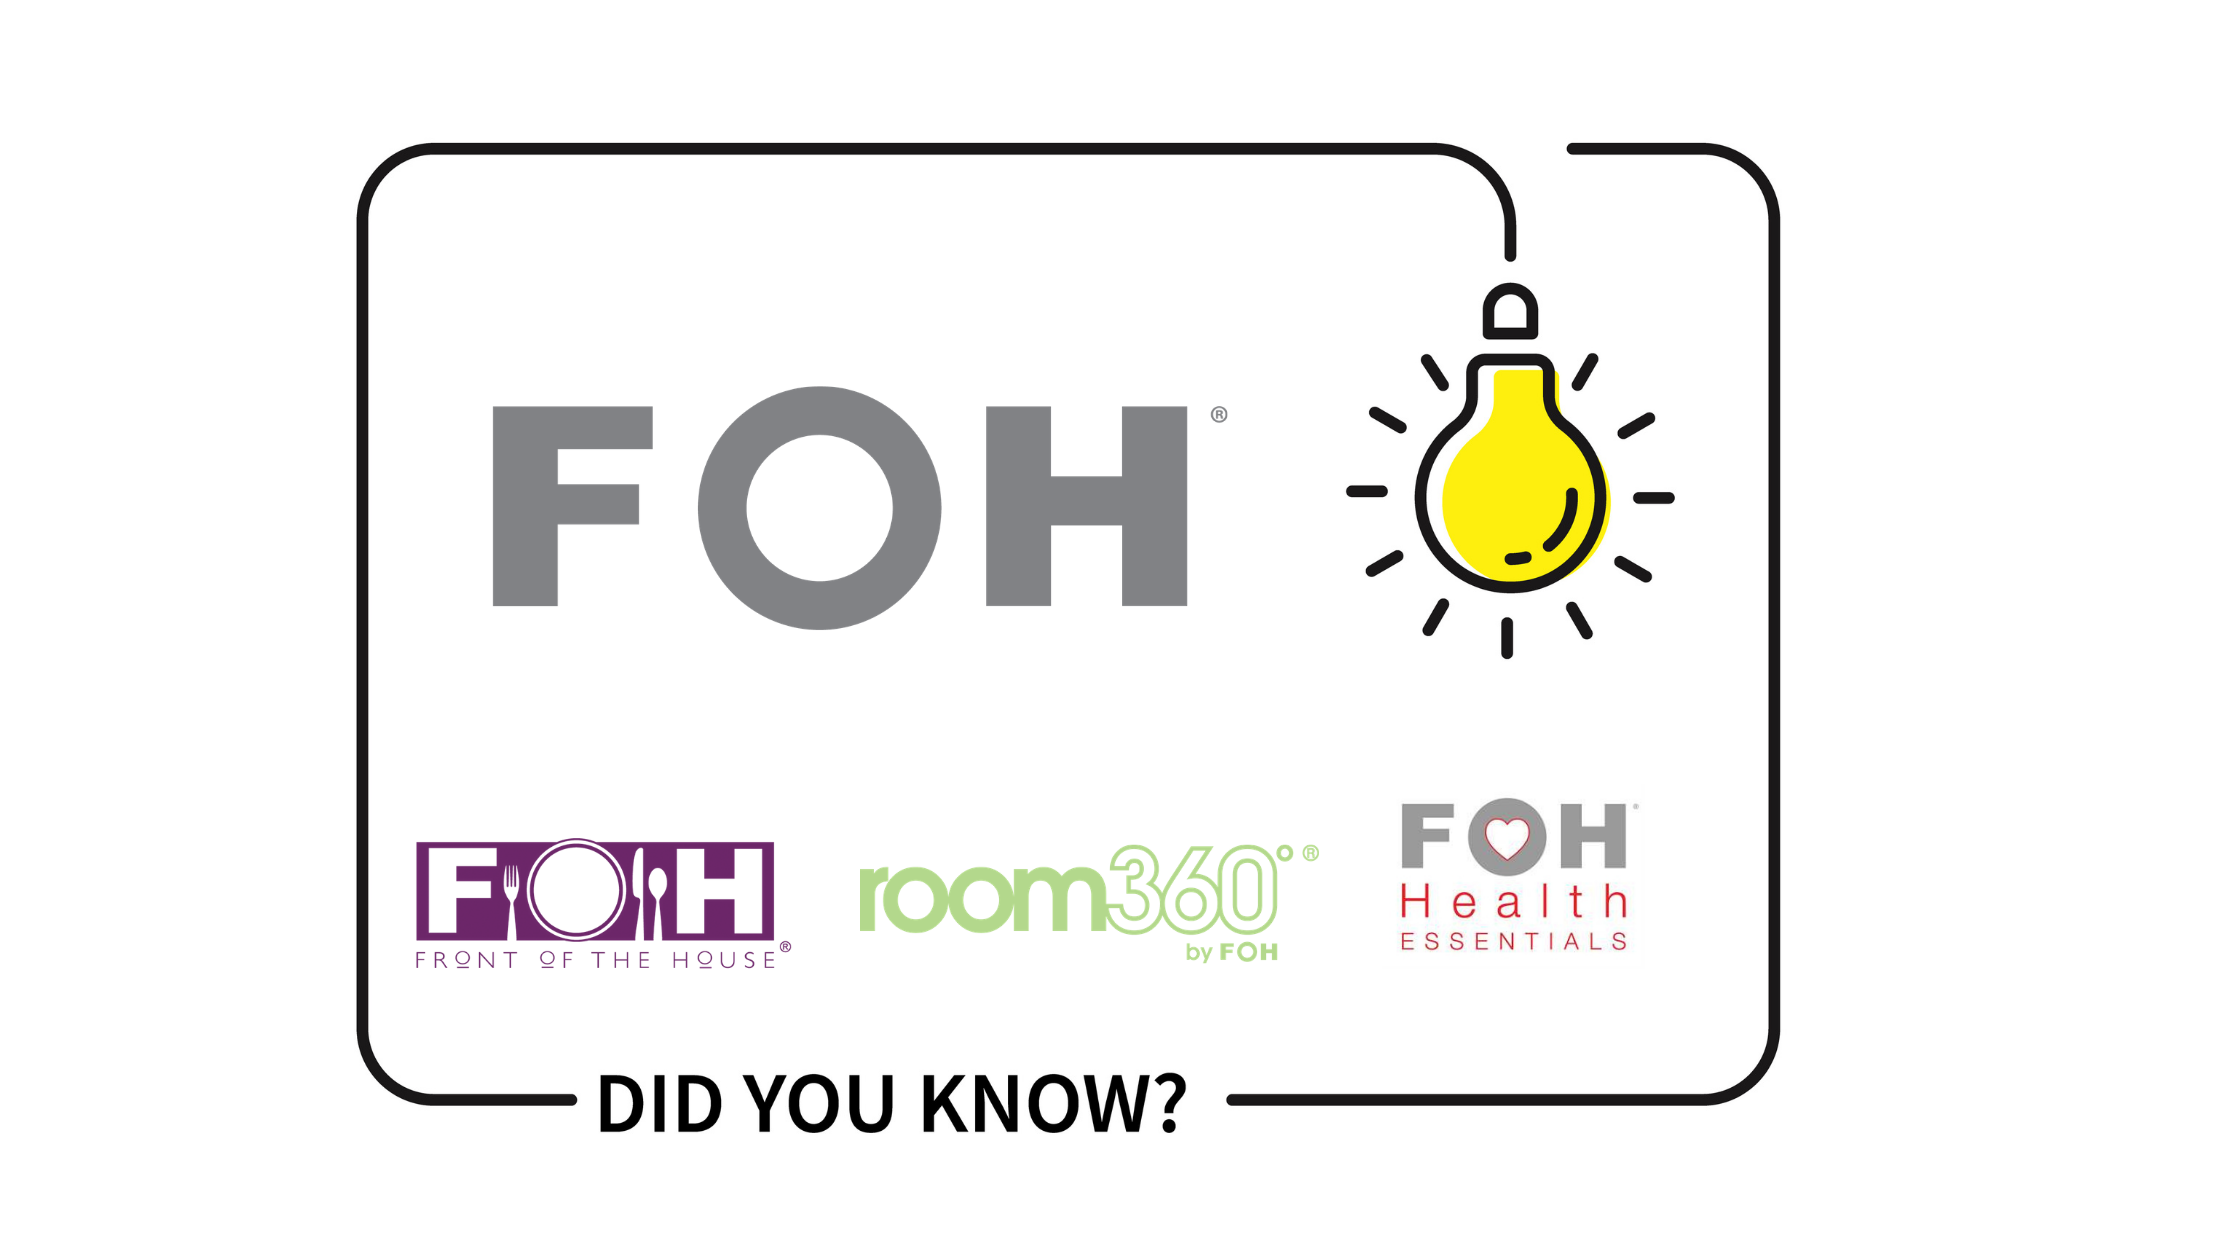 10 Things You May Not Know About FOH